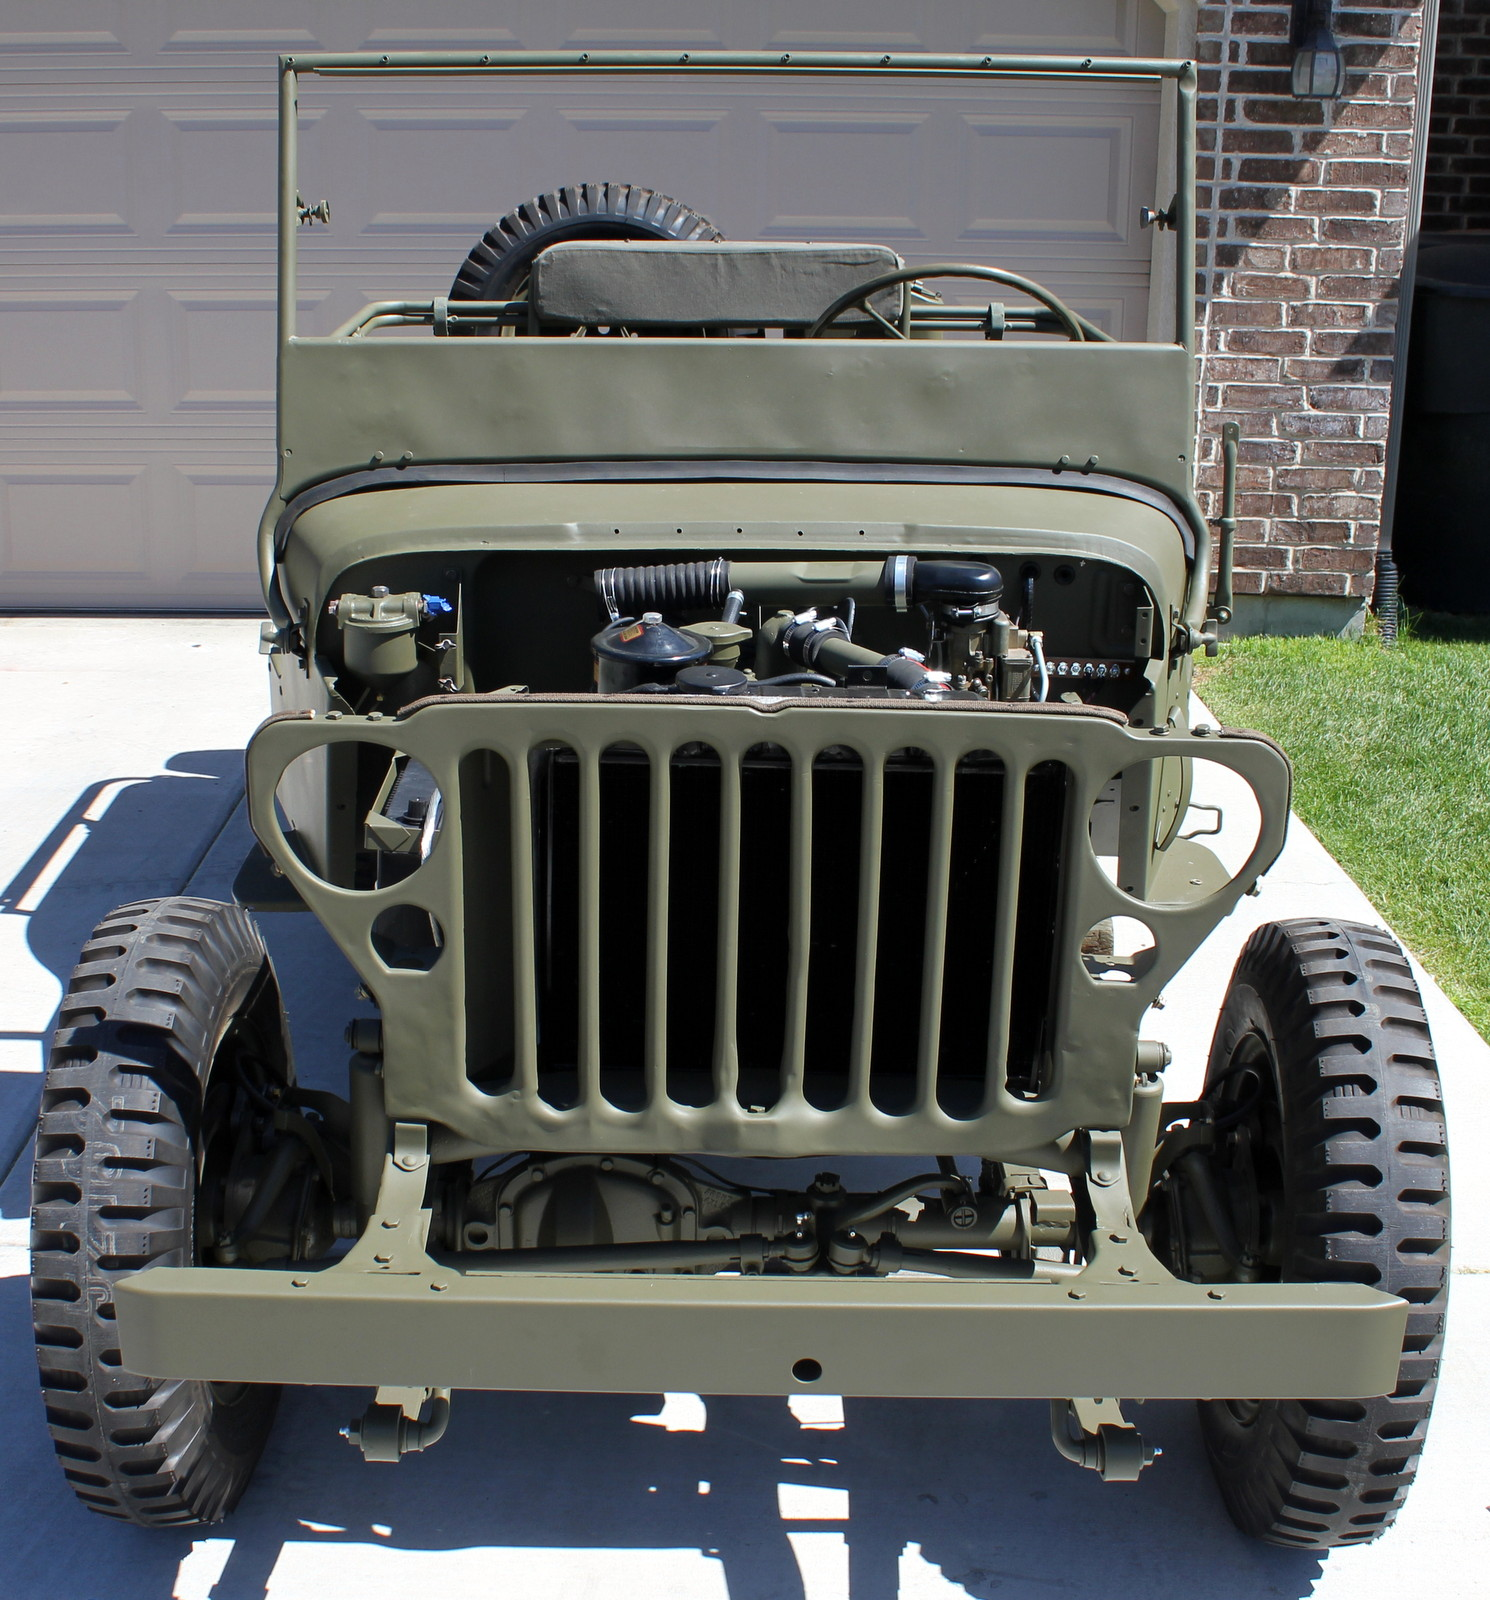 willys mb jeep fuel lines  willys  free engine image for